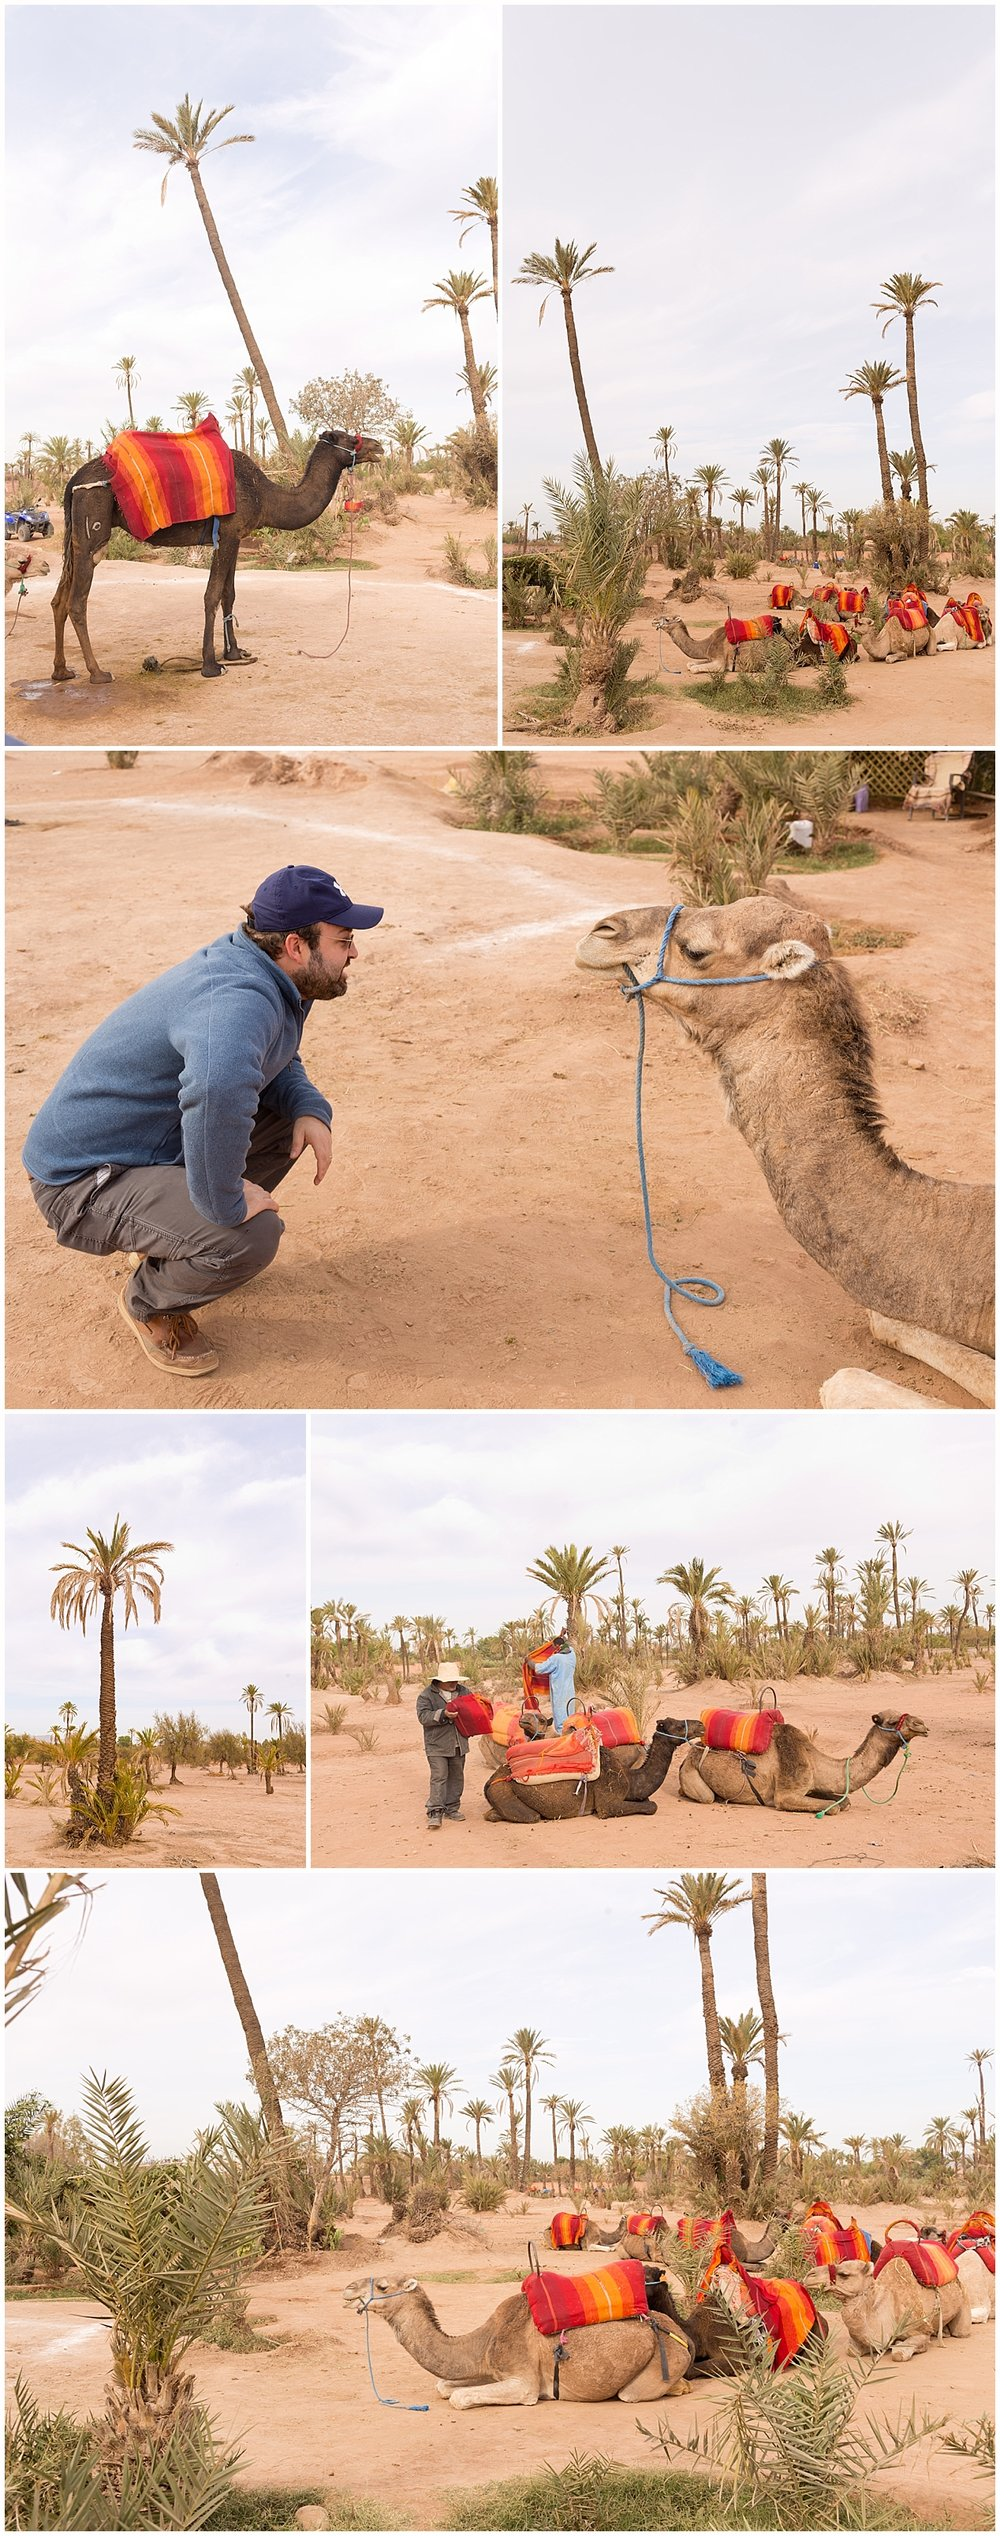 tourist with camels in Marrakech, Morocco travelogue